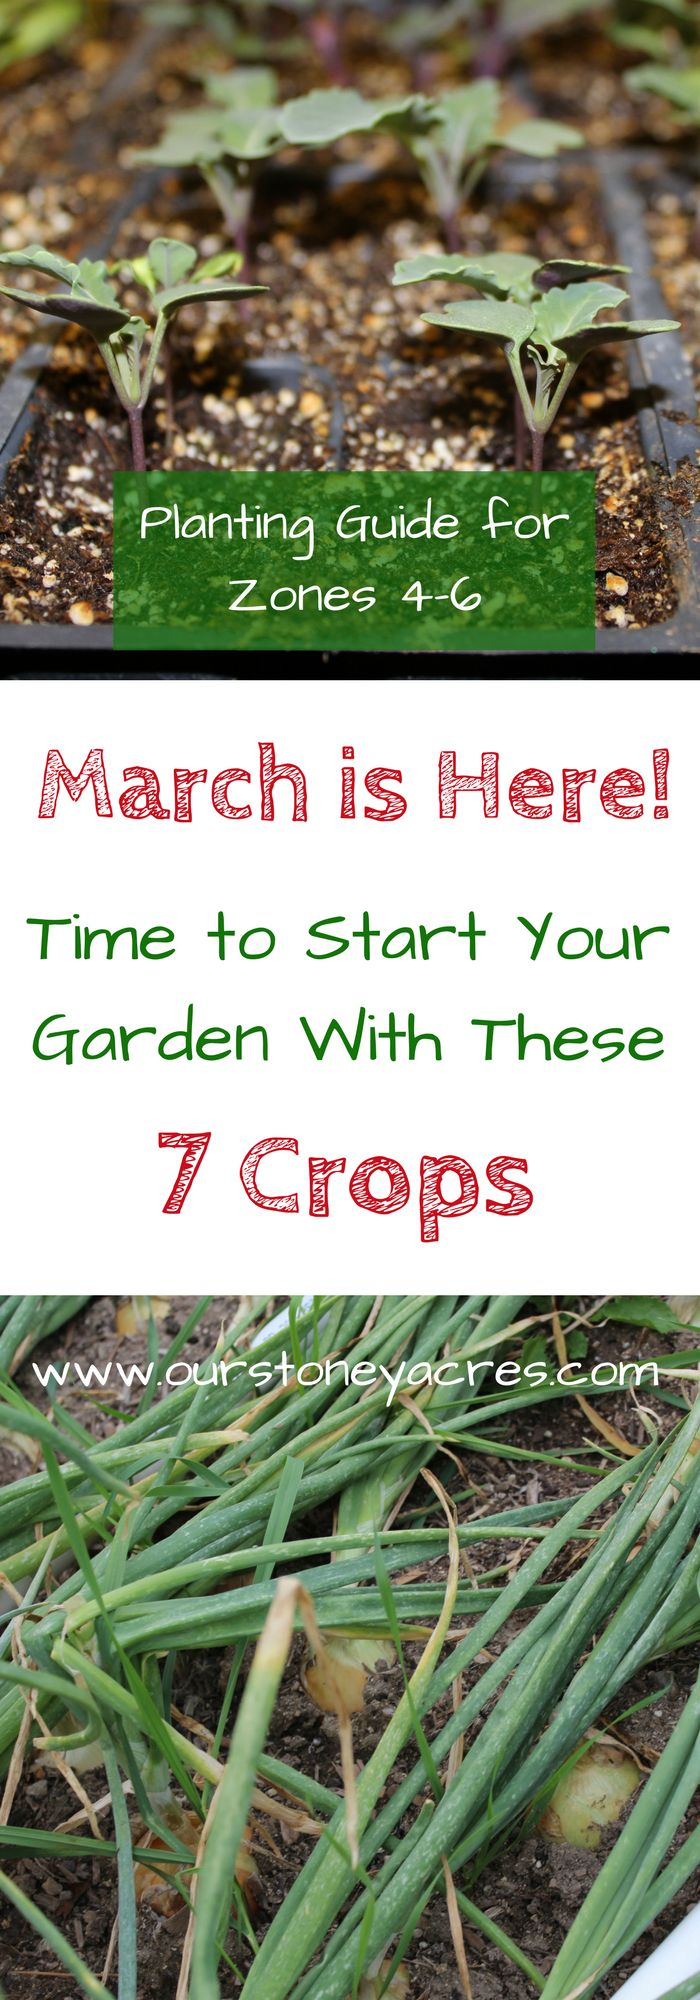 March Planting Guide Zones 4-6.  March has arrived in your garden! This March Planting Guide will give those of you that live in Zones 4-6 a good idea of what seeds can be planted directly in the garden and what seedlings you need to be planting indoors during the month of March!